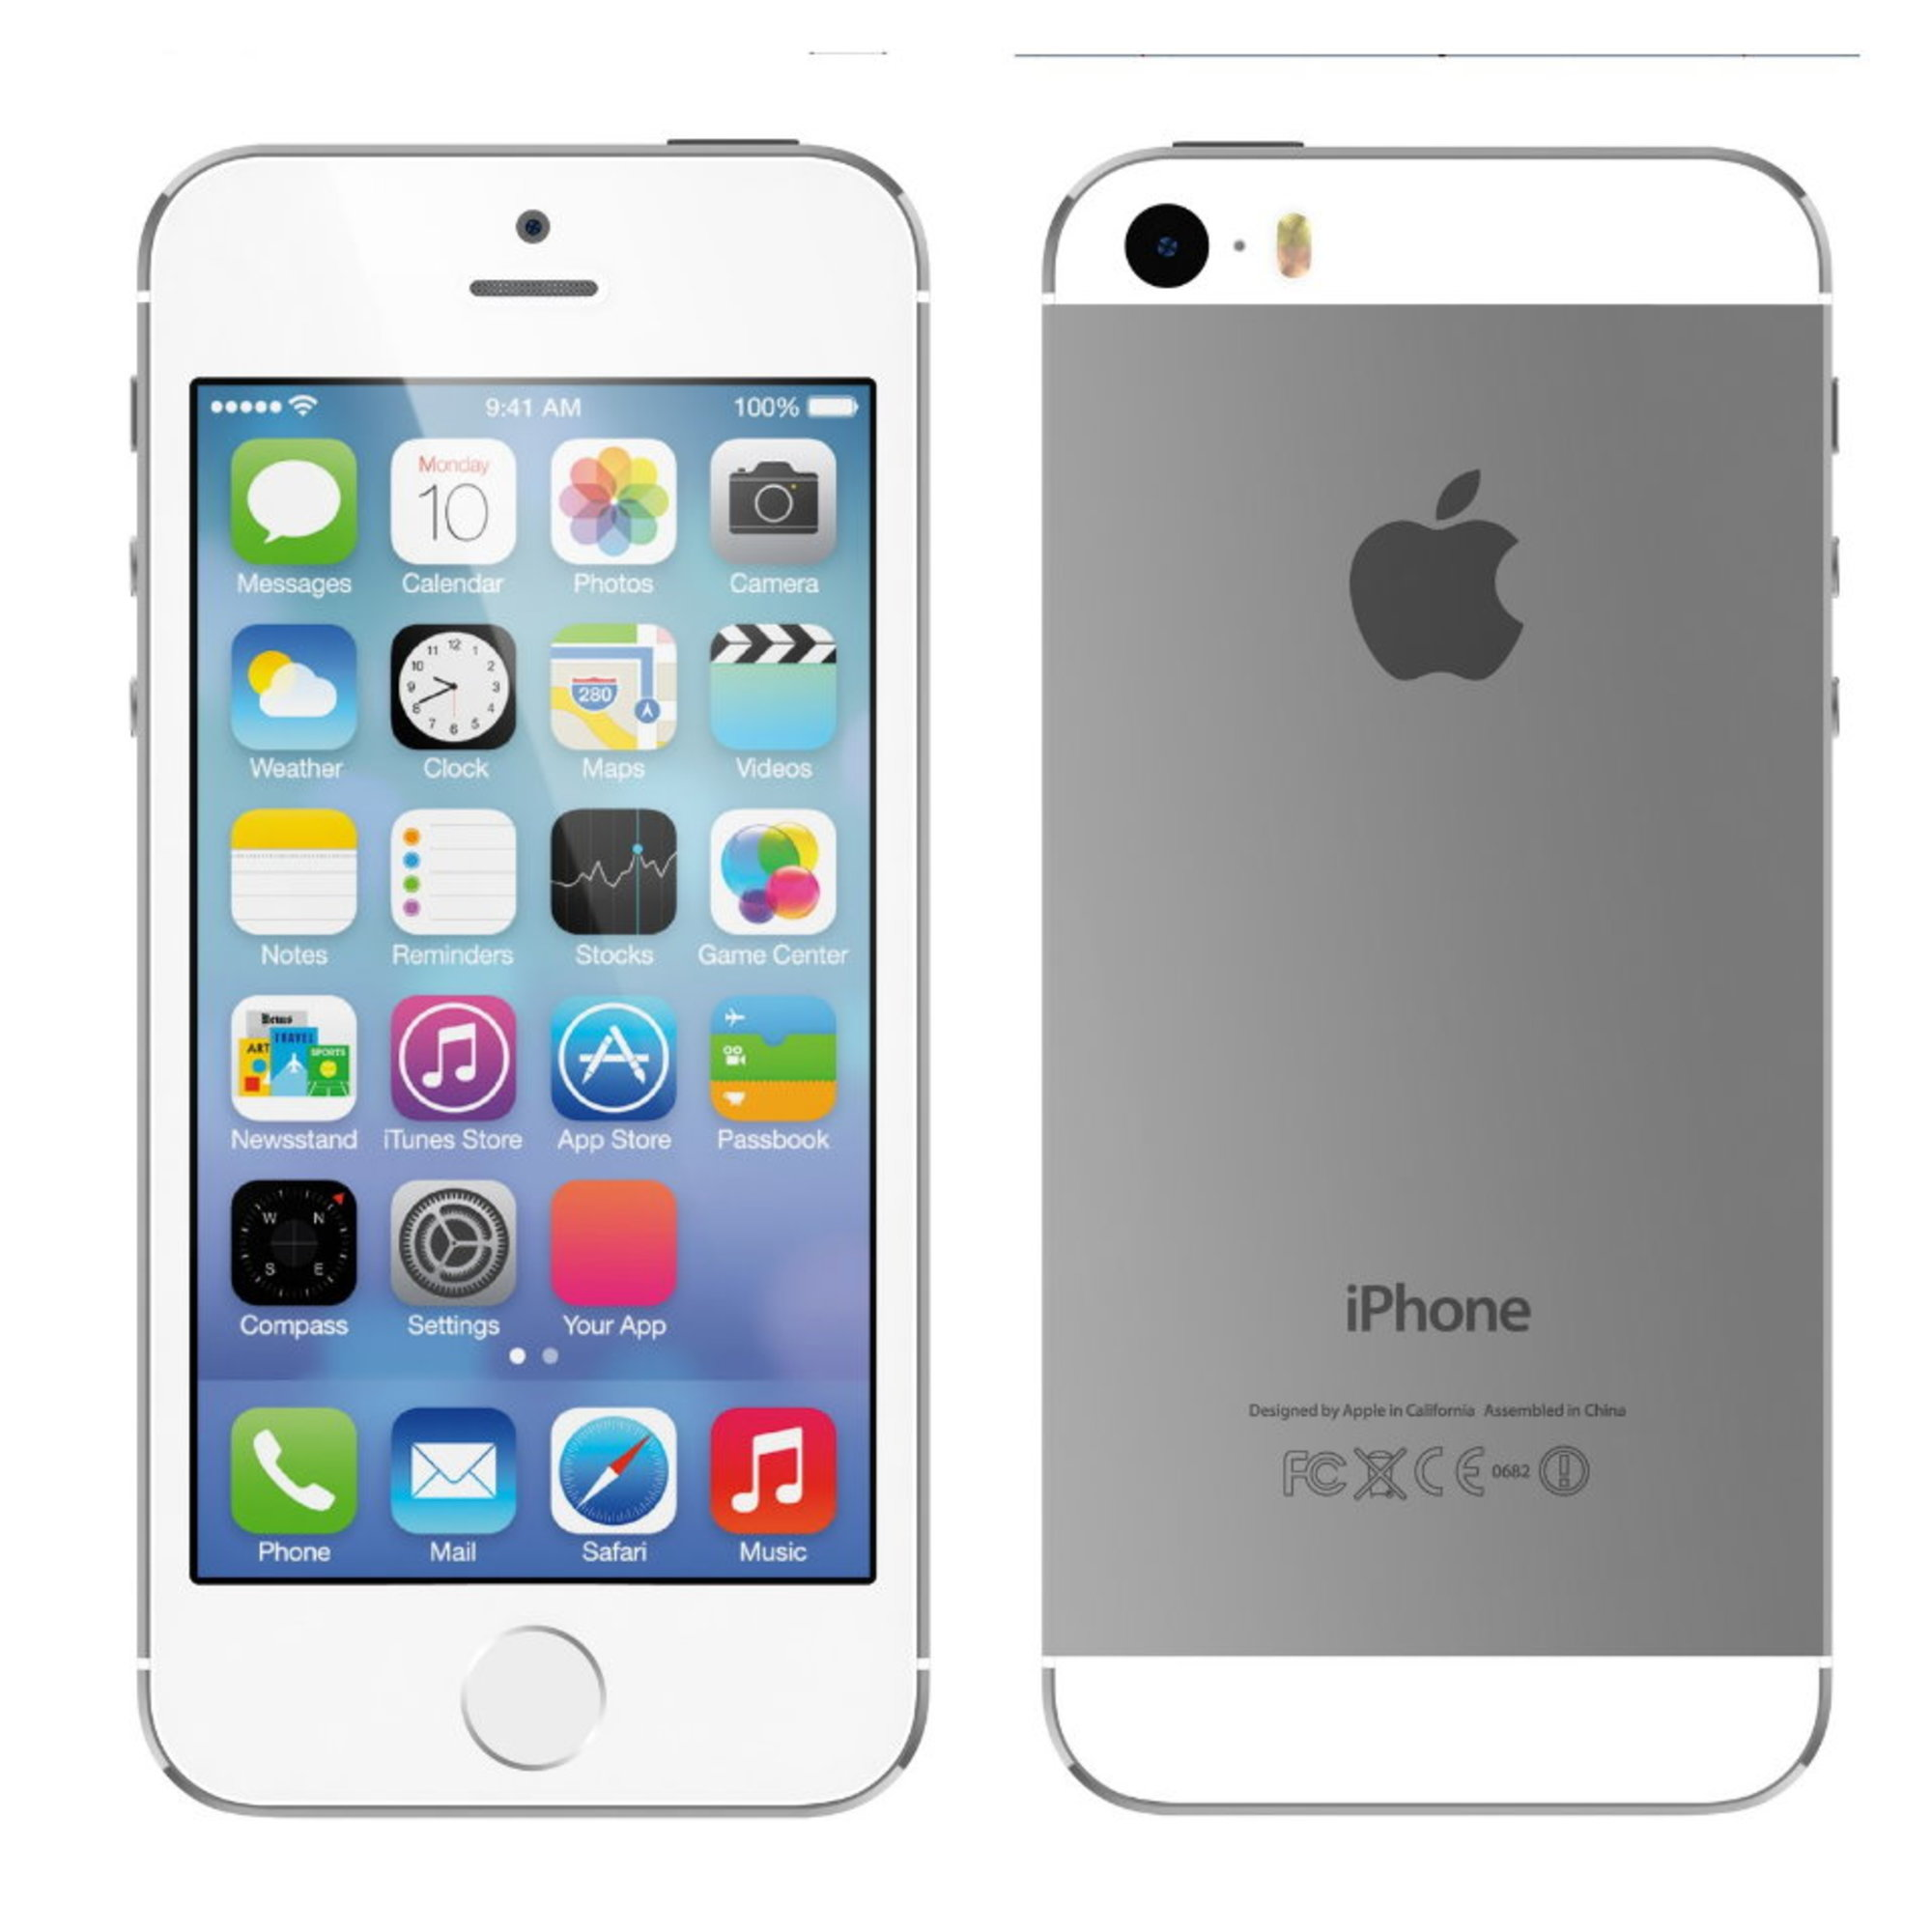 apple iphone 5s 16gb unlocked gsm lte dualcore 8mp phone. Black Bedroom Furniture Sets. Home Design Ideas